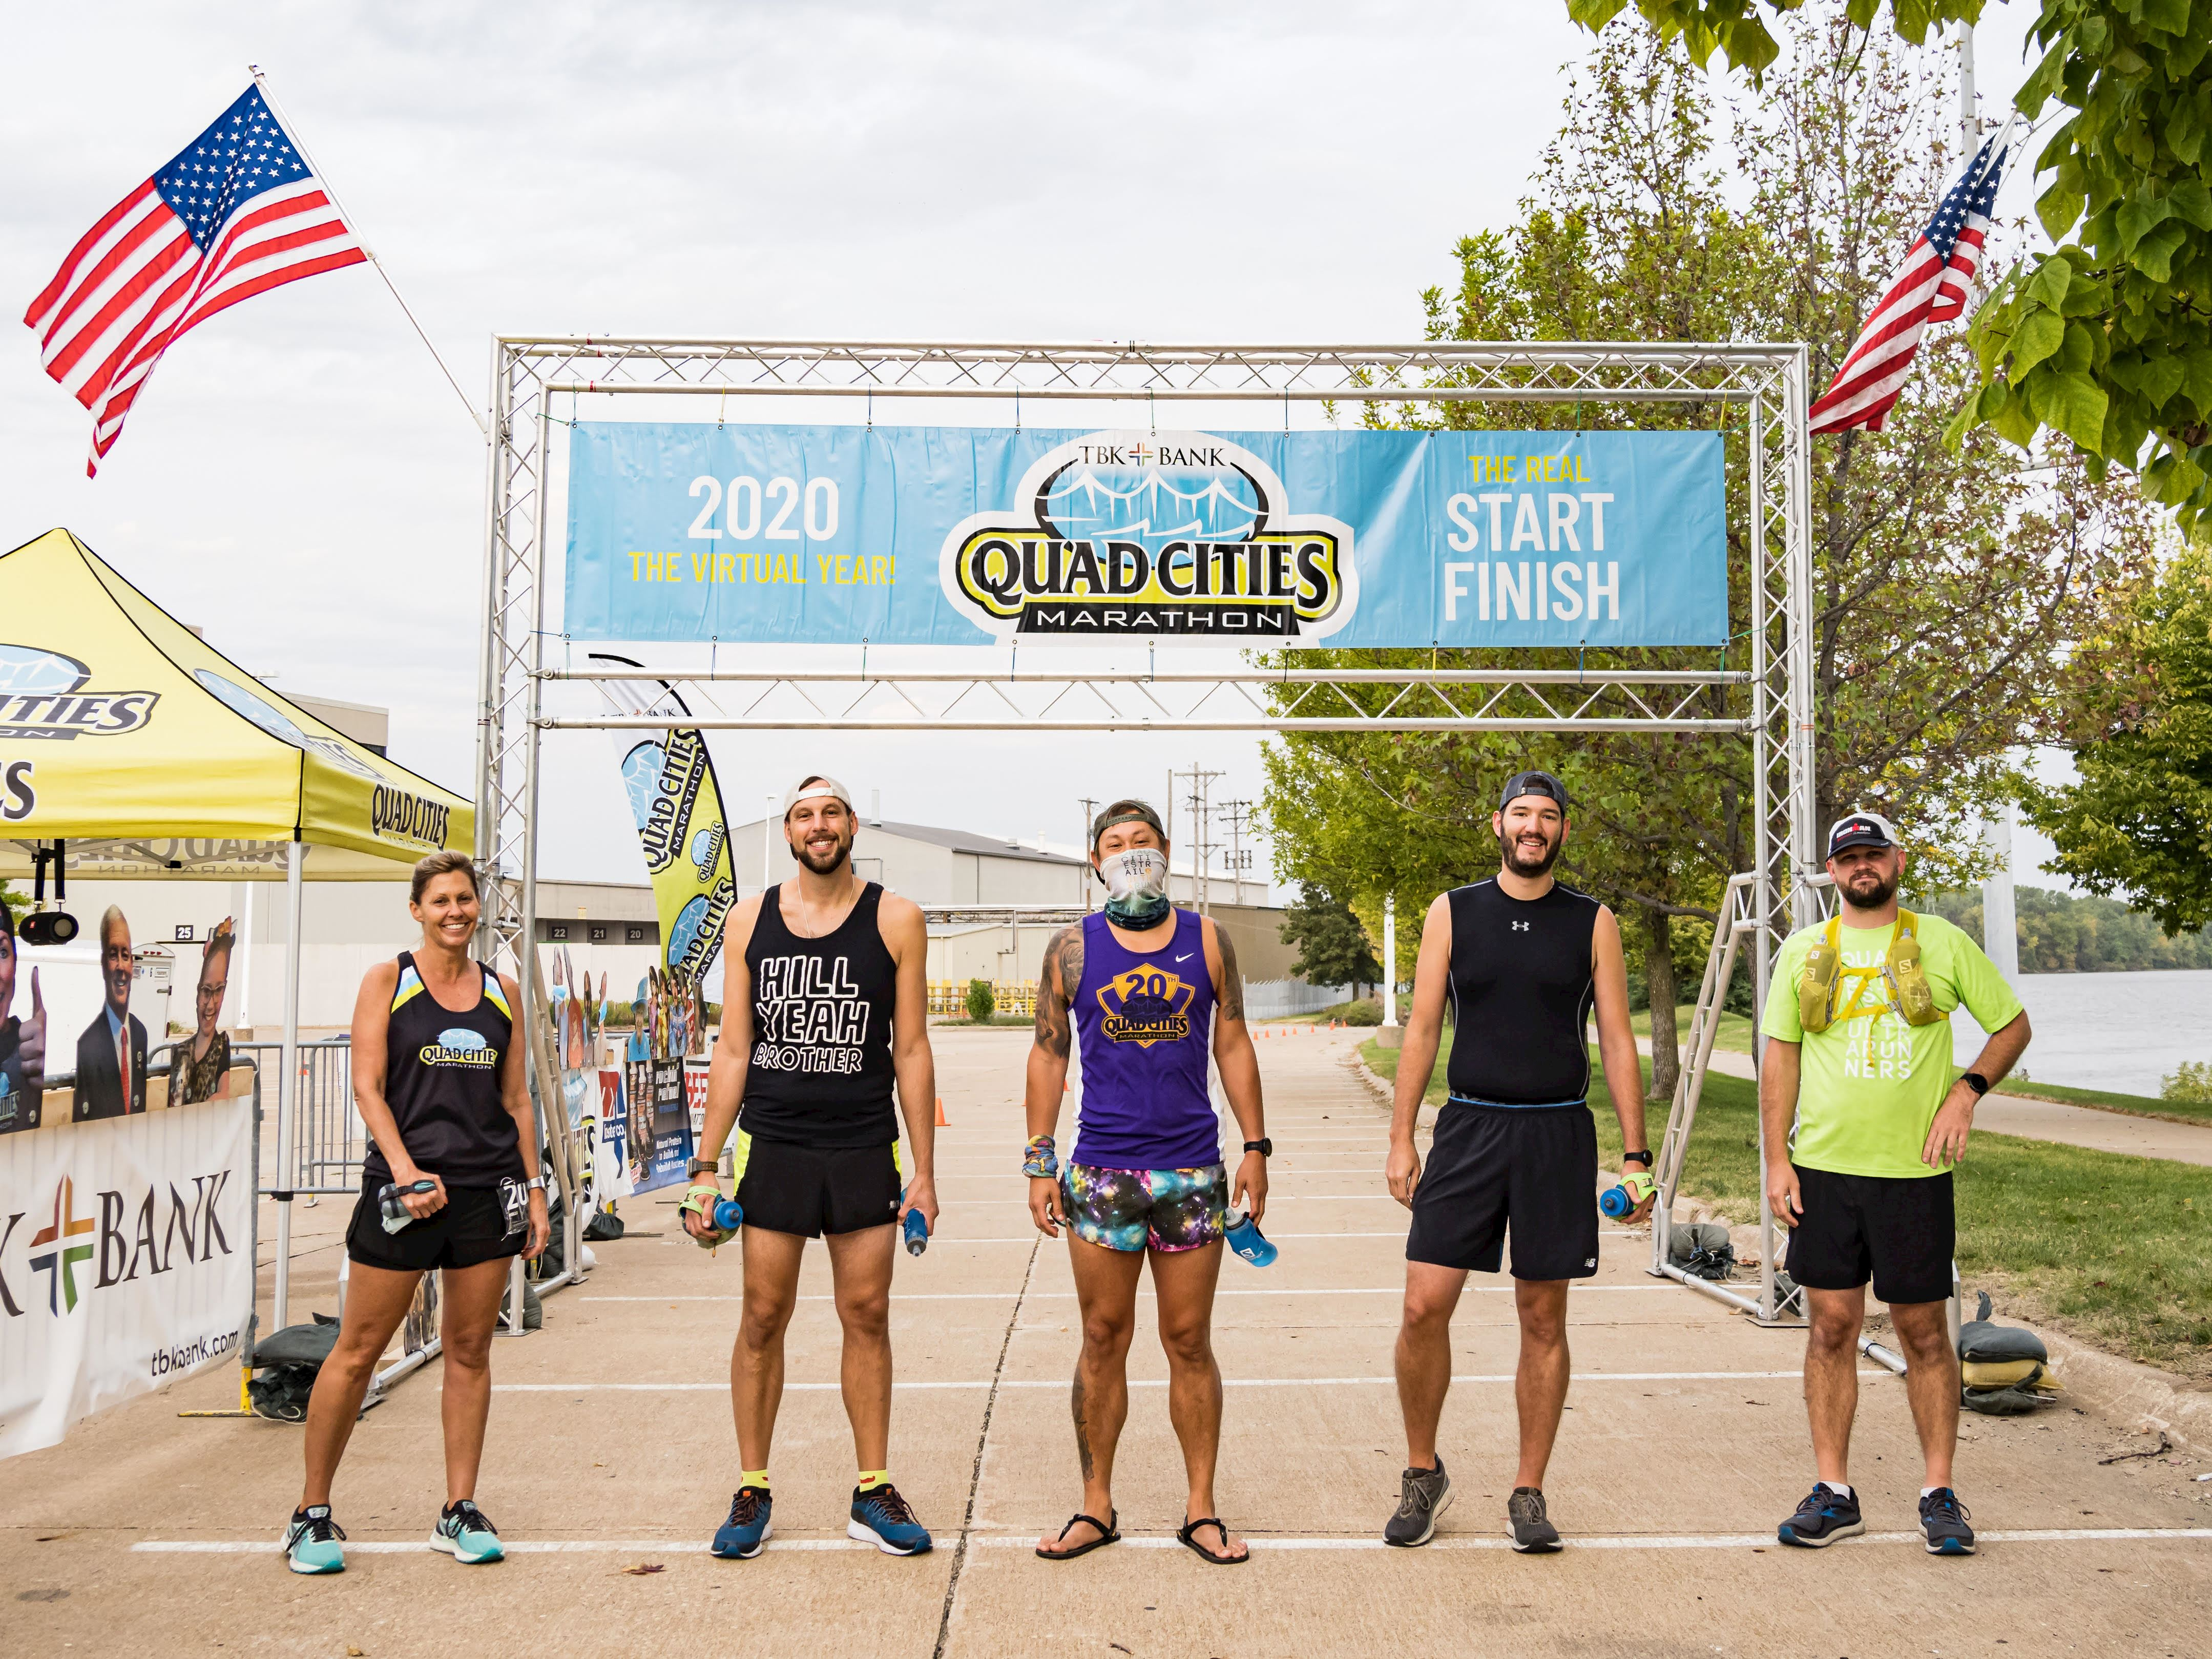 How  the Quad Cities Marathon 2020 responded to COVID-19 Pandemic